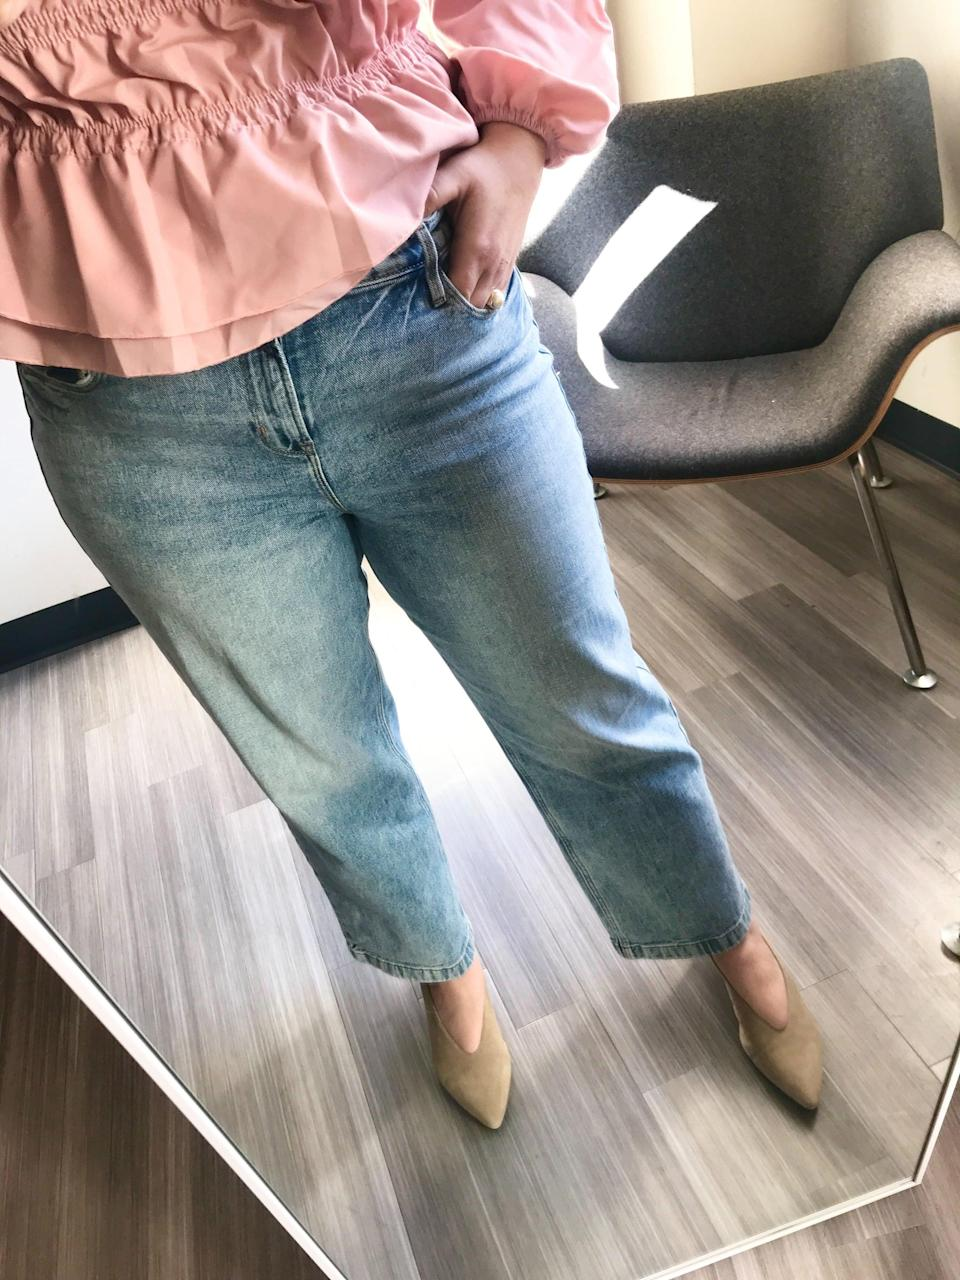 "<p><strong>The item:</strong> <span>Old Navy High-Waisted Light Stone-Washed Slim Wide-Leg Jeans</span> ($40) </p> <p><strong>What our editor said:</strong> ""I slipped them on and they buttoned over my stomach with ease, fitting snugly without squeezing or pinching. I bought a size 12, which is my typical choice for bottoms, so they're true to size. Not only do these jeans fit well, but they're also smoothing and a great cut. They have a bit of elastic in them, which makes the material really comfortable, too. Luckily, even with the built-in stretch, they don't bag out after wearing them all day. The wider leg is cute because it can easily be dressed up or down. I found a winner! I could definitely wear a bodysuit or tucked-in shirt with these jeans and feel amazing."" - MCW</p> <p>If you want to read more, here is <a href=""https://www.popsugar.com/fashion/old-navy-jeans-for-women-review-47260507"" class=""link rapid-noclick-resp"" rel=""nofollow noopener"" target=""_blank"" data-ylk=""slk:the complete review"">the complete review</a>.</p>"